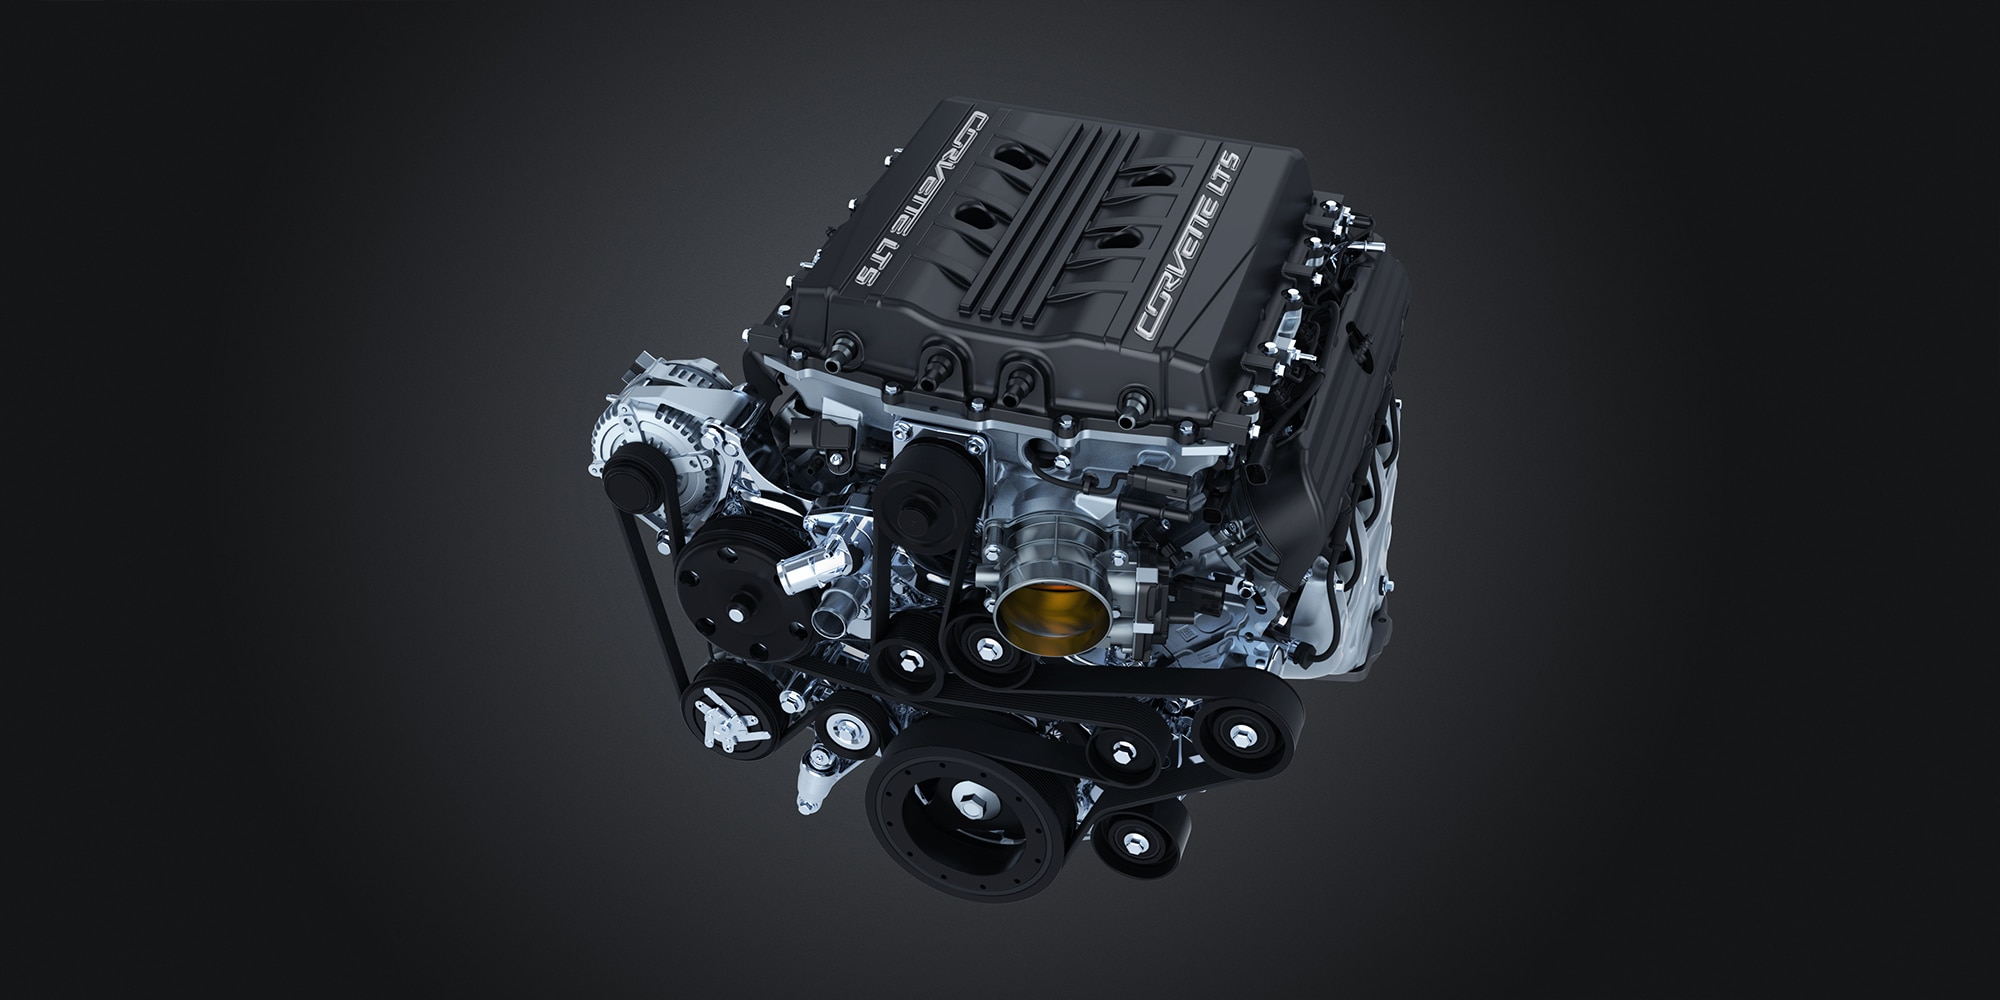 Chevrolet Corvette ZR1- 2019 - GM V8 6.2L LT5 - engine / moteur